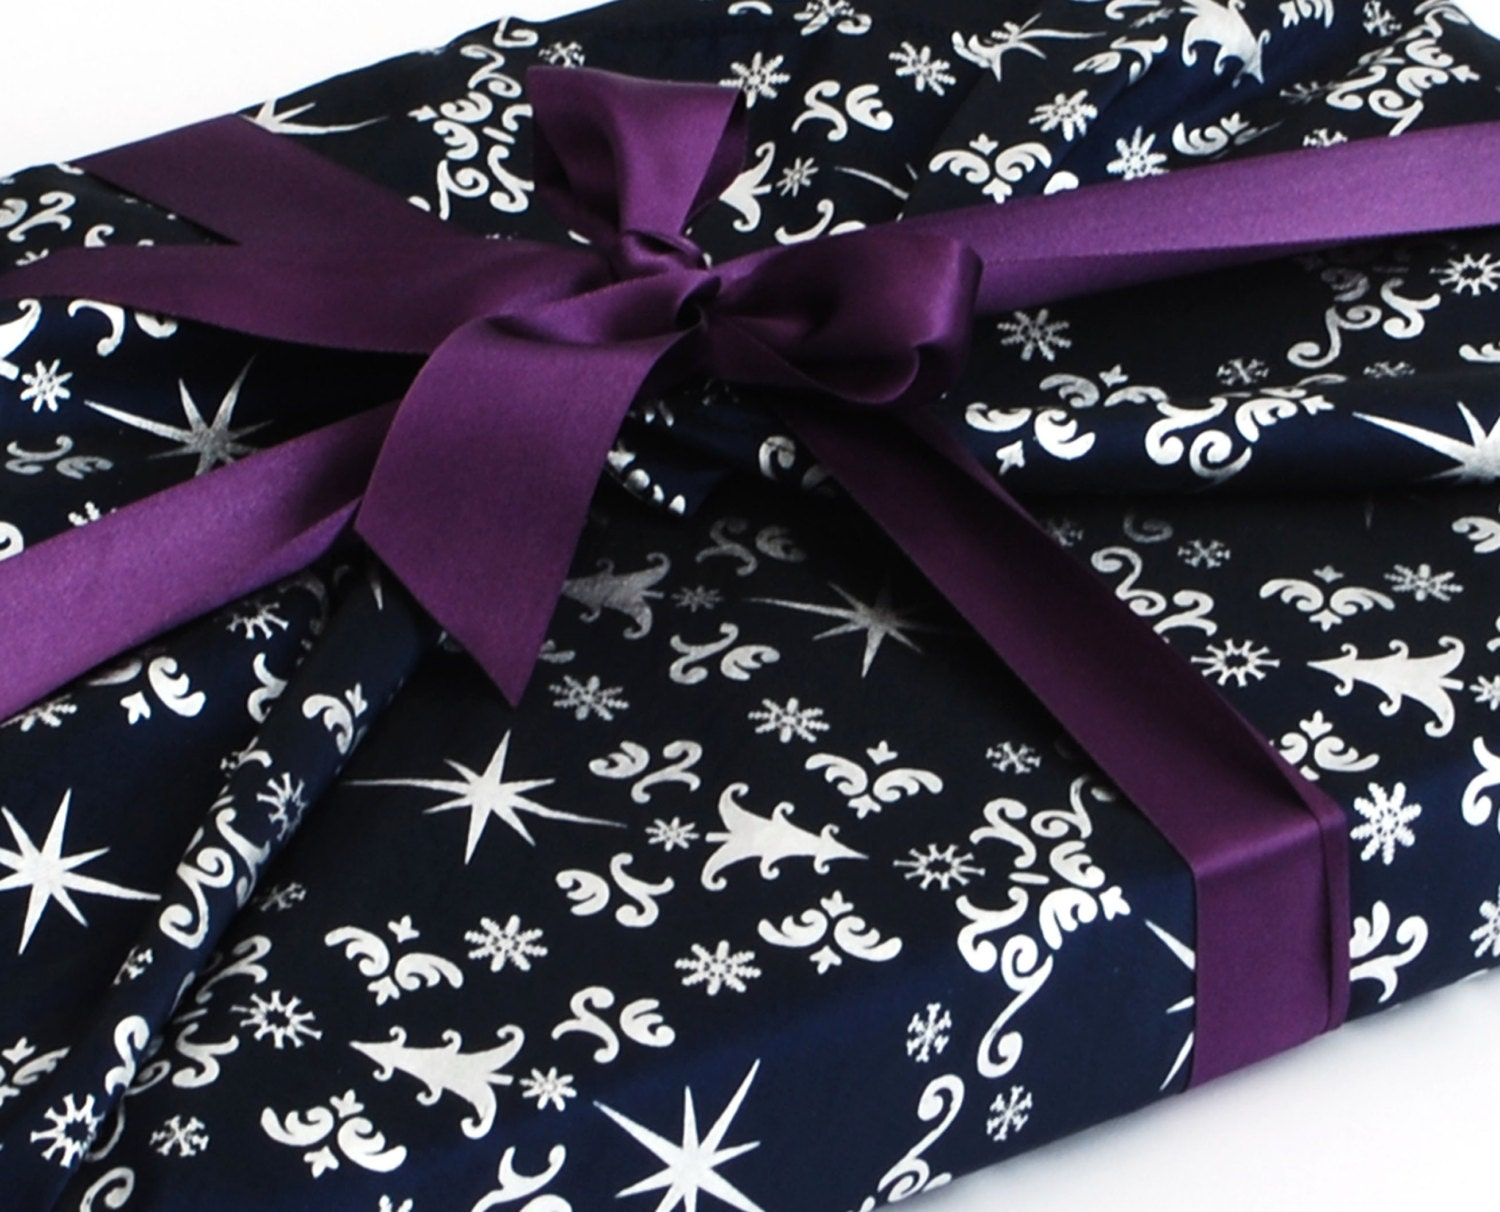 Luxury Reusable Gift Wrapping For Christmas Happywrap In Navy